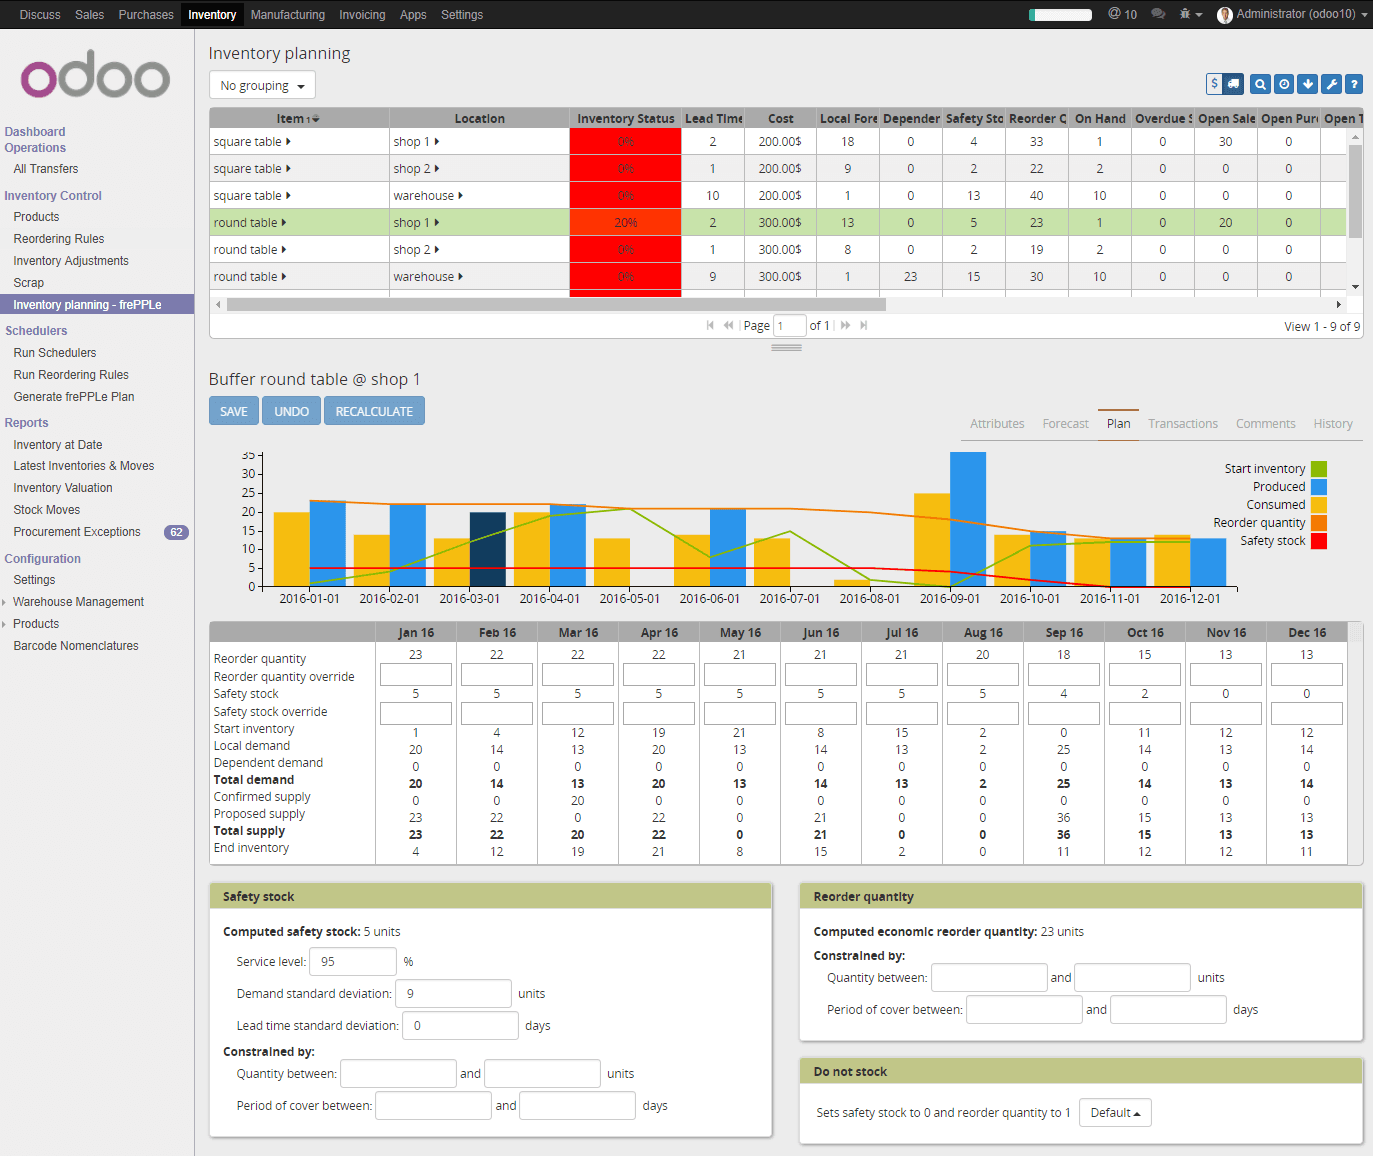 odoo-screenshot